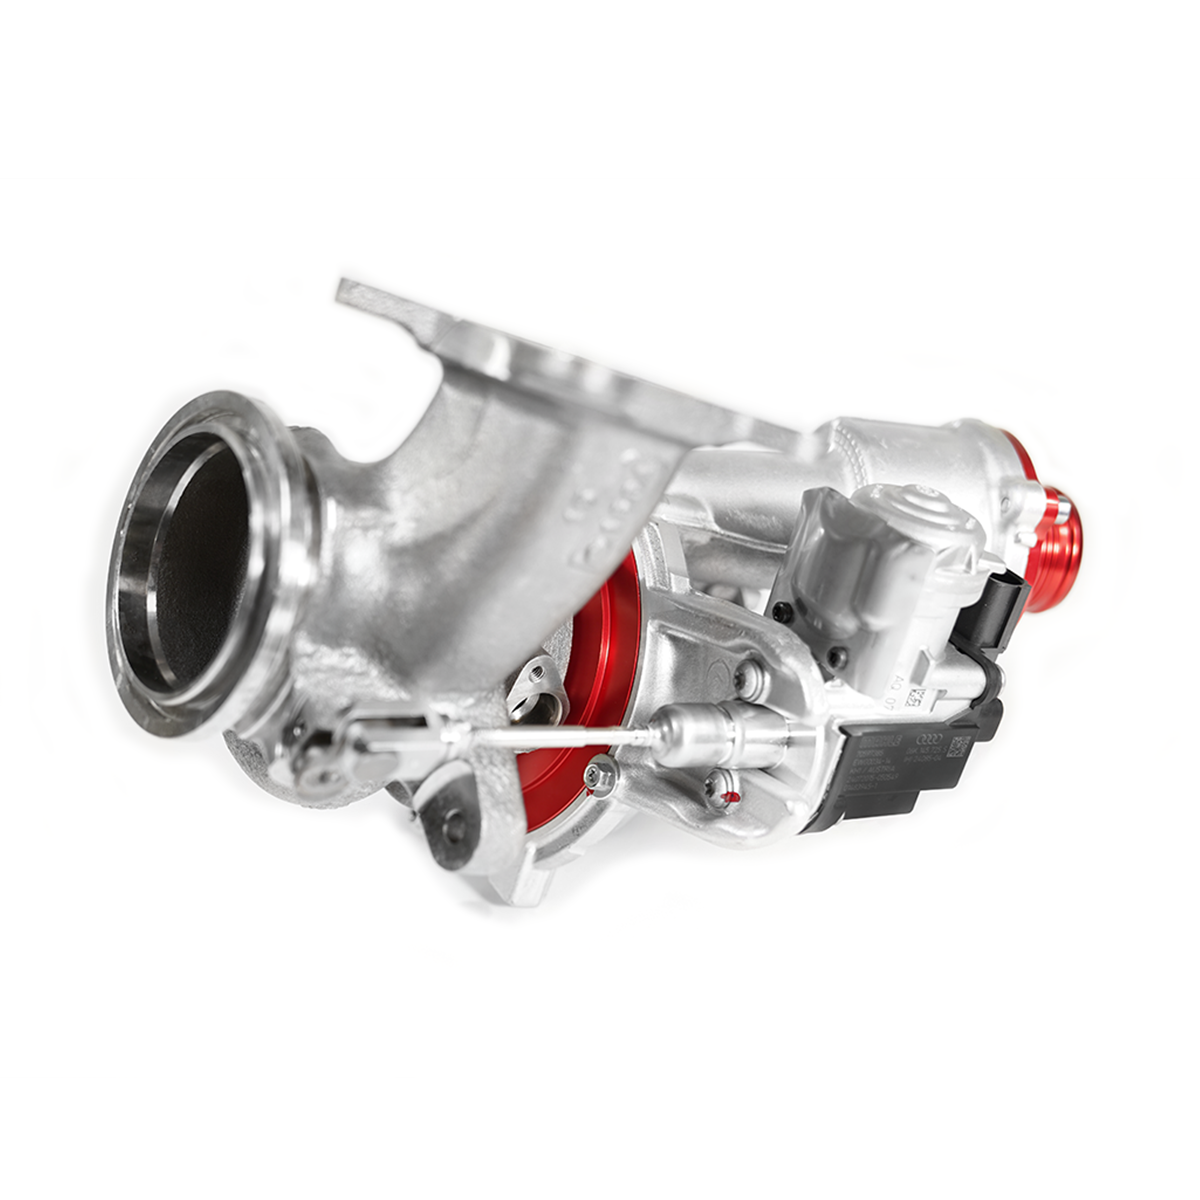 Revo IS38ETR V2 Turbo Upgrade